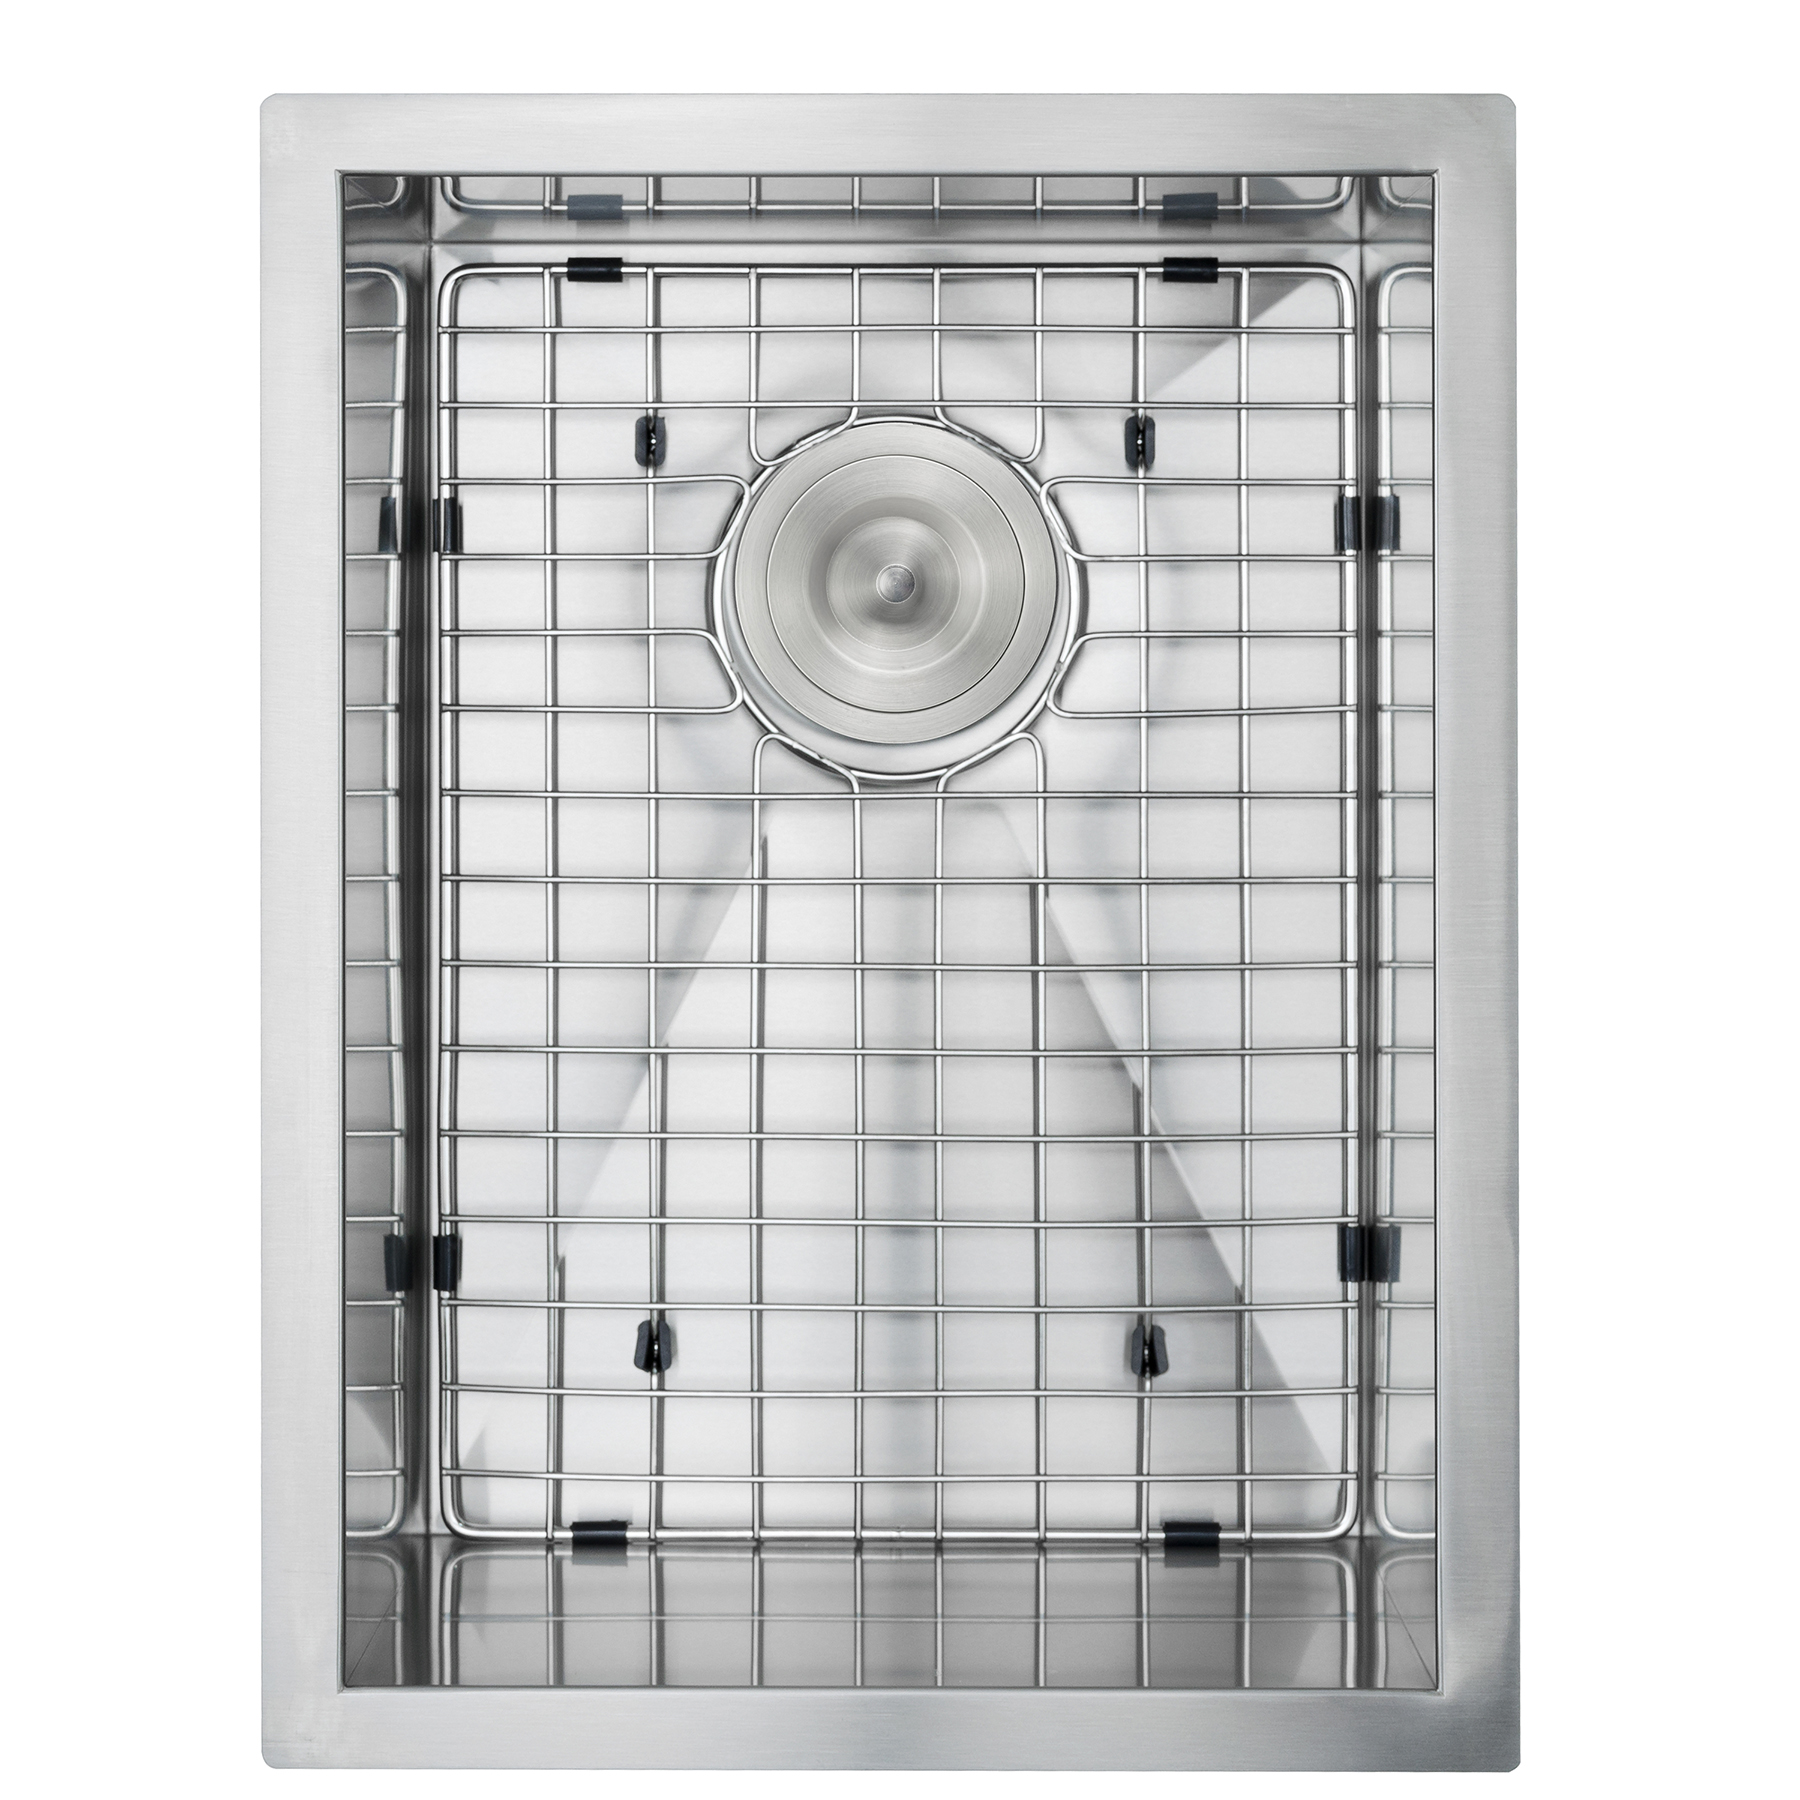 "Image of AKDY 15"" x 20"" x 9"" Handmade Under Mount Basin Stainless Steel Kitchen Sink w/ Grid & Drain Kit"